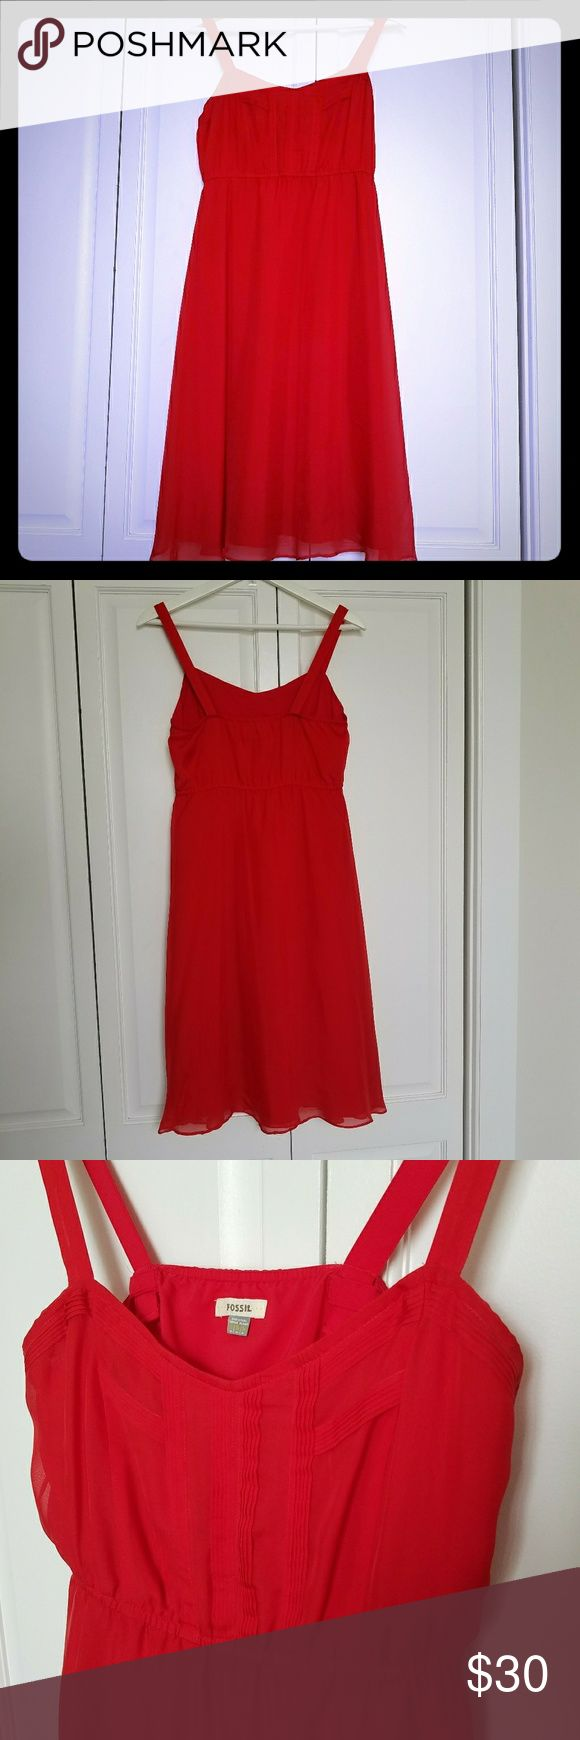 Fossil Womens Sun Dress A-line Chiffon Silk Sz S Fossil Womens Sun Dress A-line Chiffon Sheer Lined Red Silk Bodice Pleating Sz S  Condition:In Excellent Condition - Like new!   Size:Small   Measurements(Approximate)  Underarm to Underarm(Laying Flat):16 inches - Will stretch to 18 inches  Waist(Laying Flat):13.5 inches - Will stretch to 16.5 inches  Shoulder to Hem:40.75 inches from strap to bottom    Have any questions? Let me know.   B_03 Fossil Dresses Midi